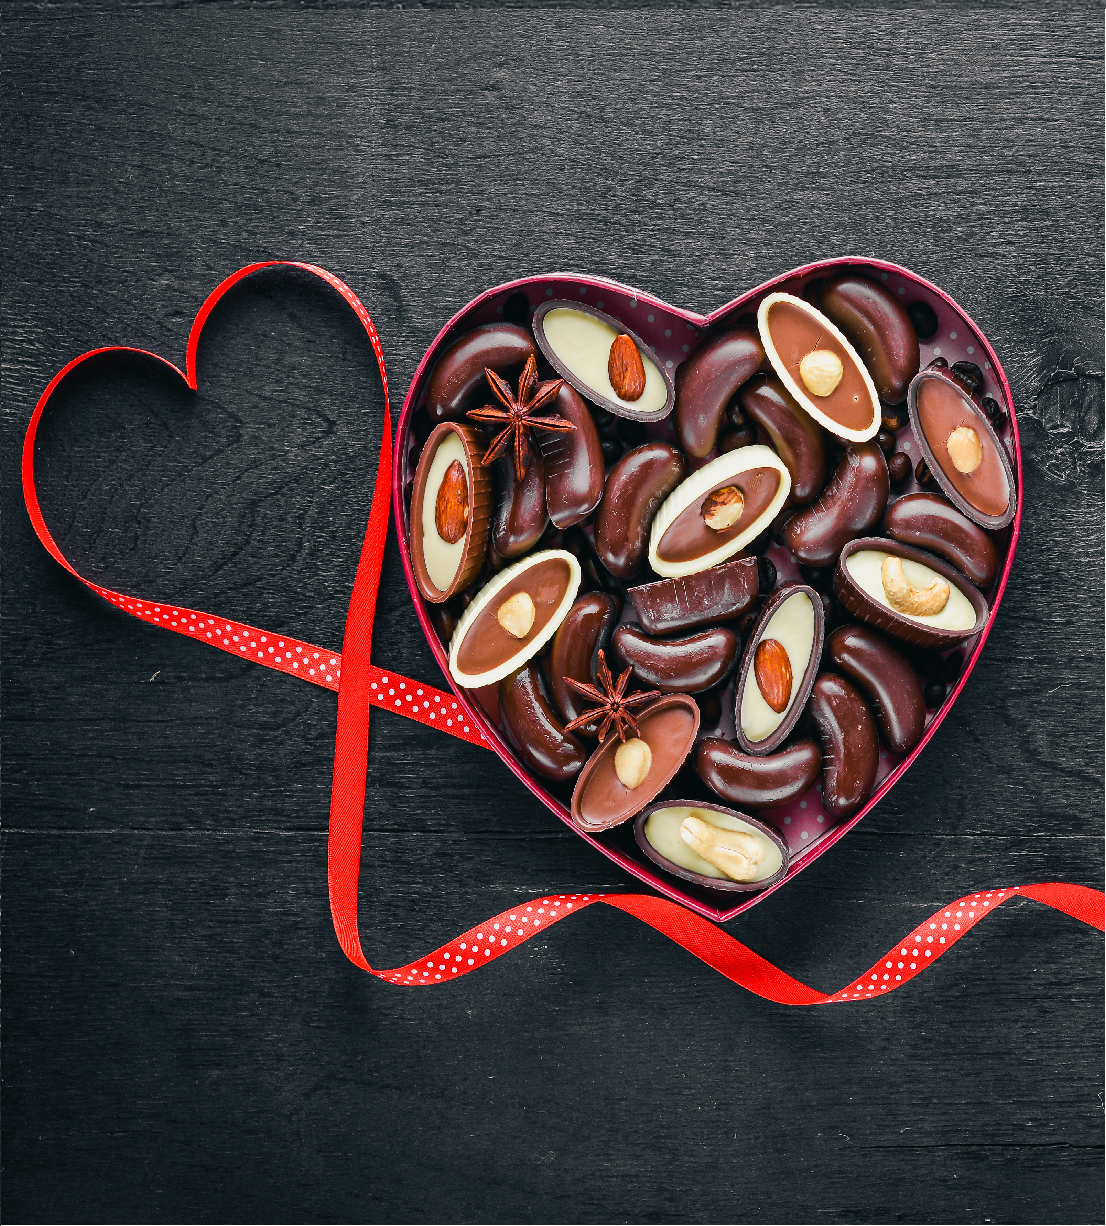 Spoil Your Loved Ones With Chocolate Delivery